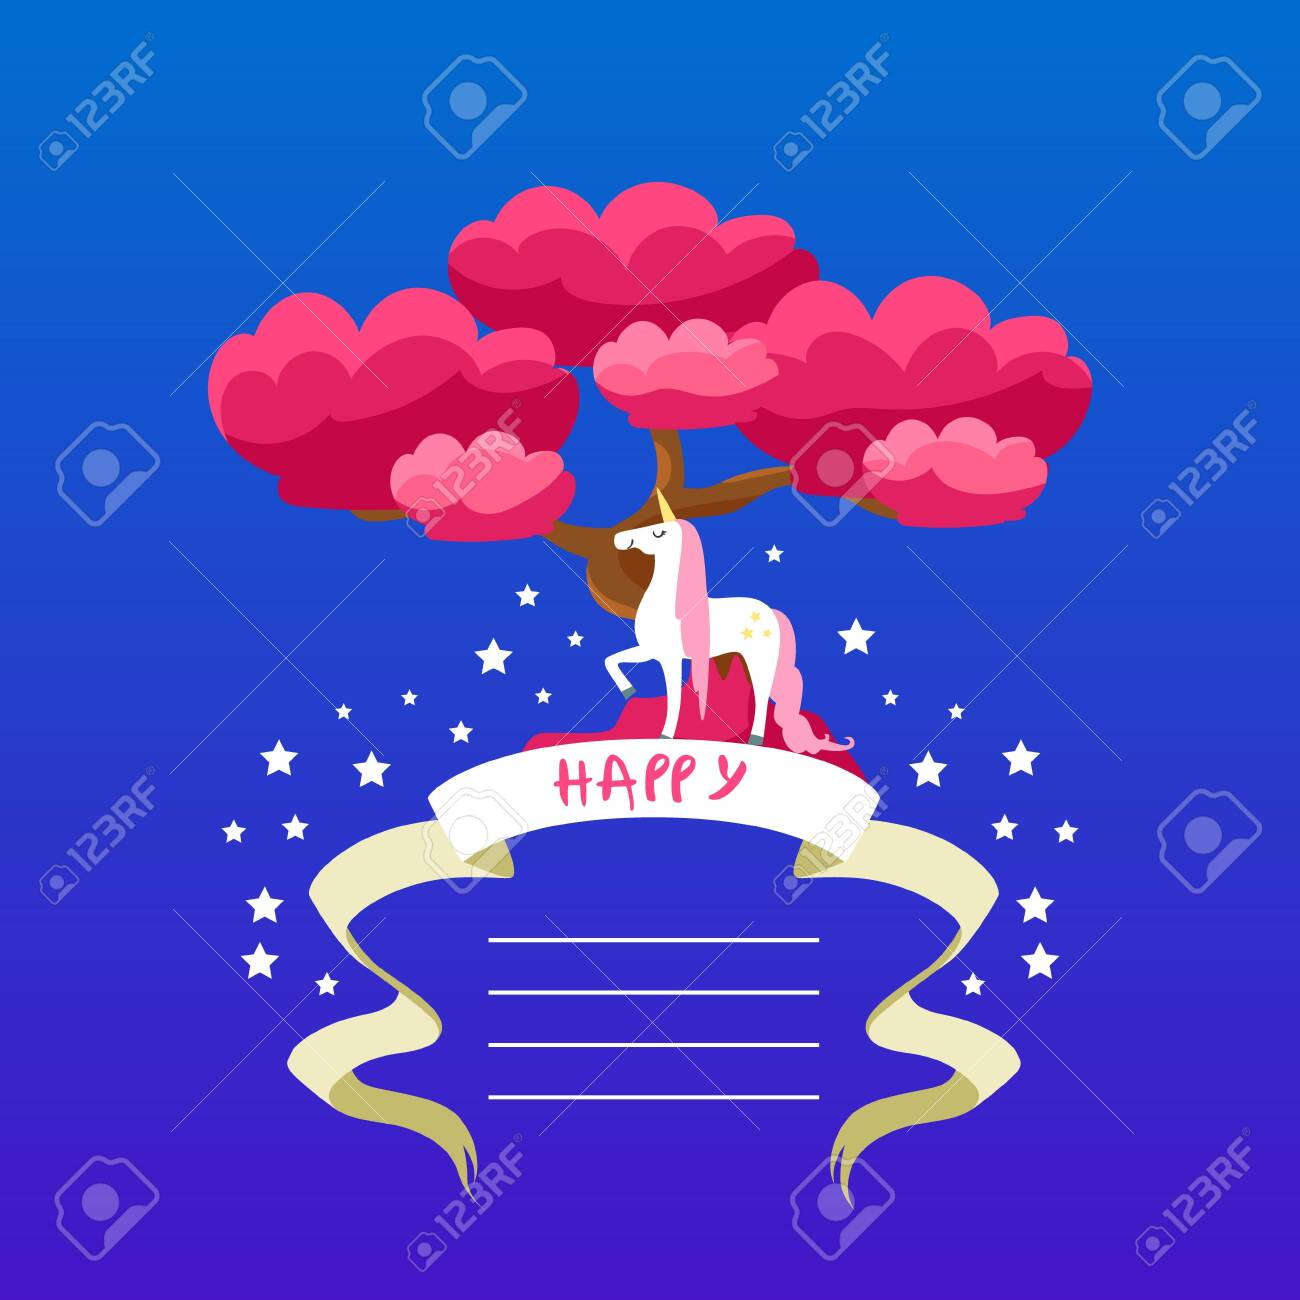 Beautiful Unicorn Card Template With Place For Text Happy Birthday